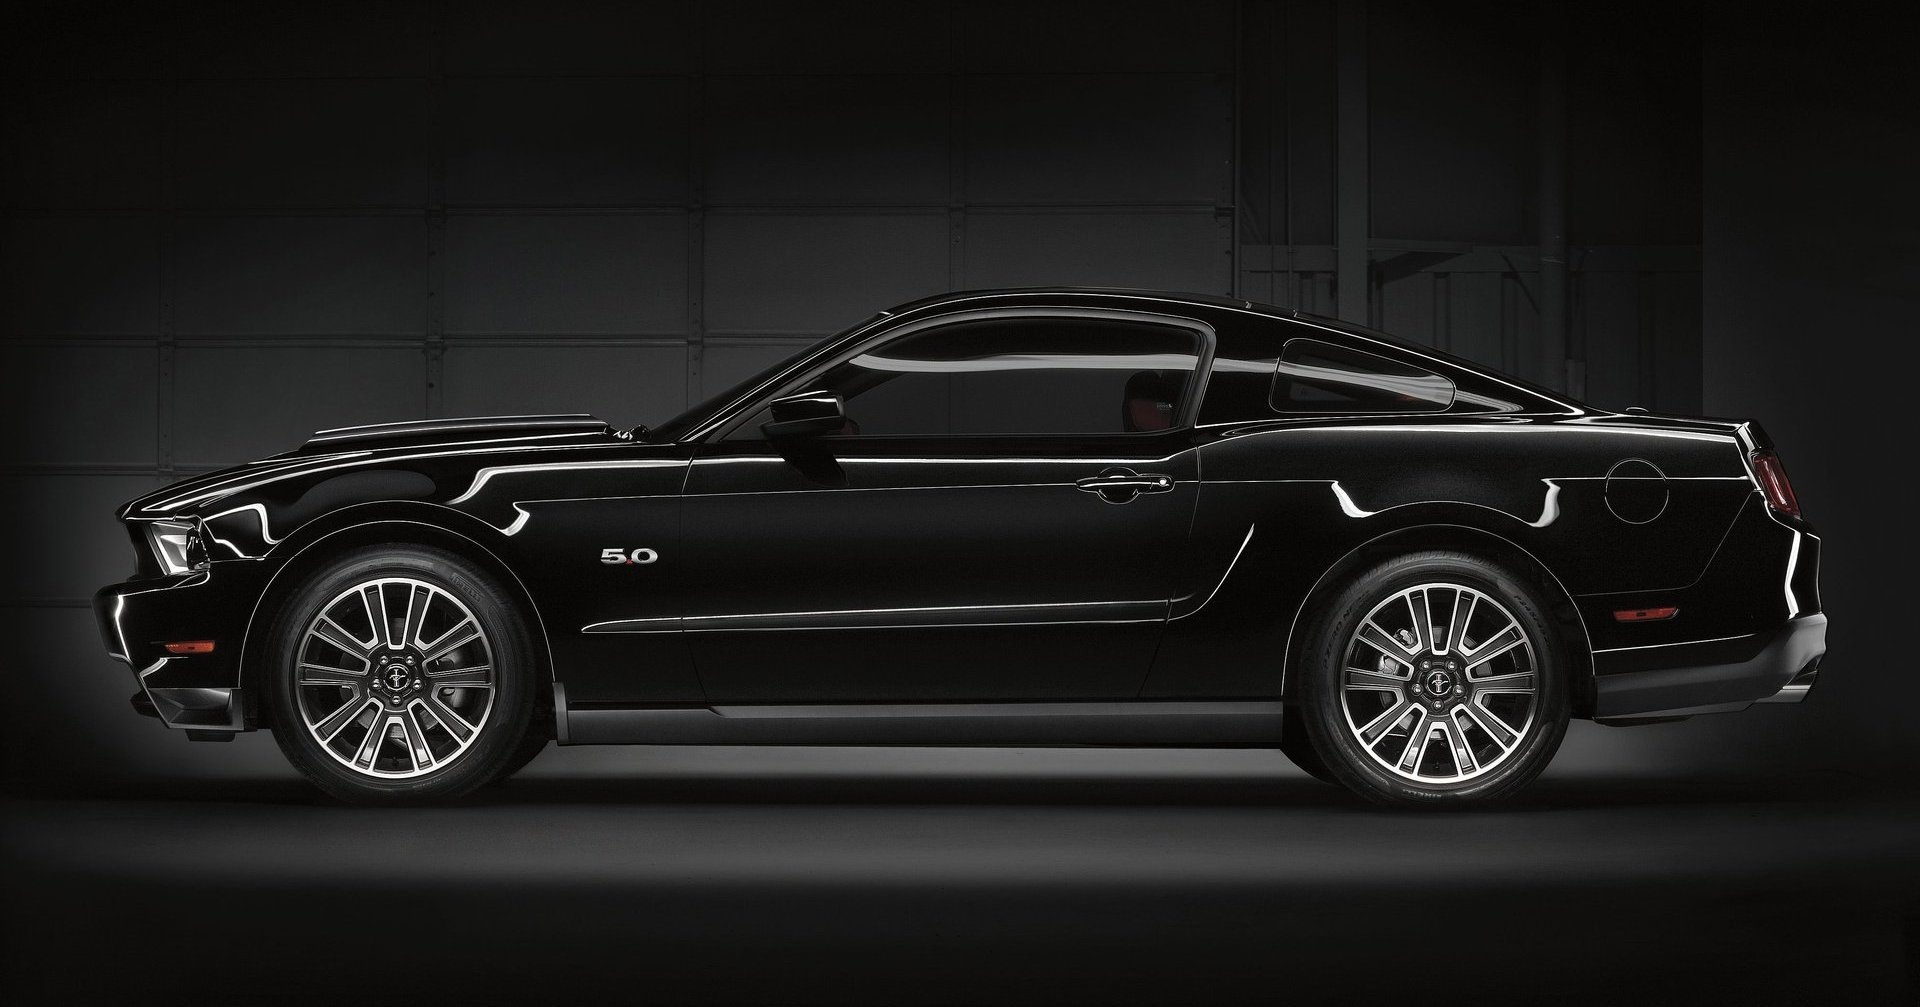 2011 ford mustang the original american sports car. Black Bedroom Furniture Sets. Home Design Ideas